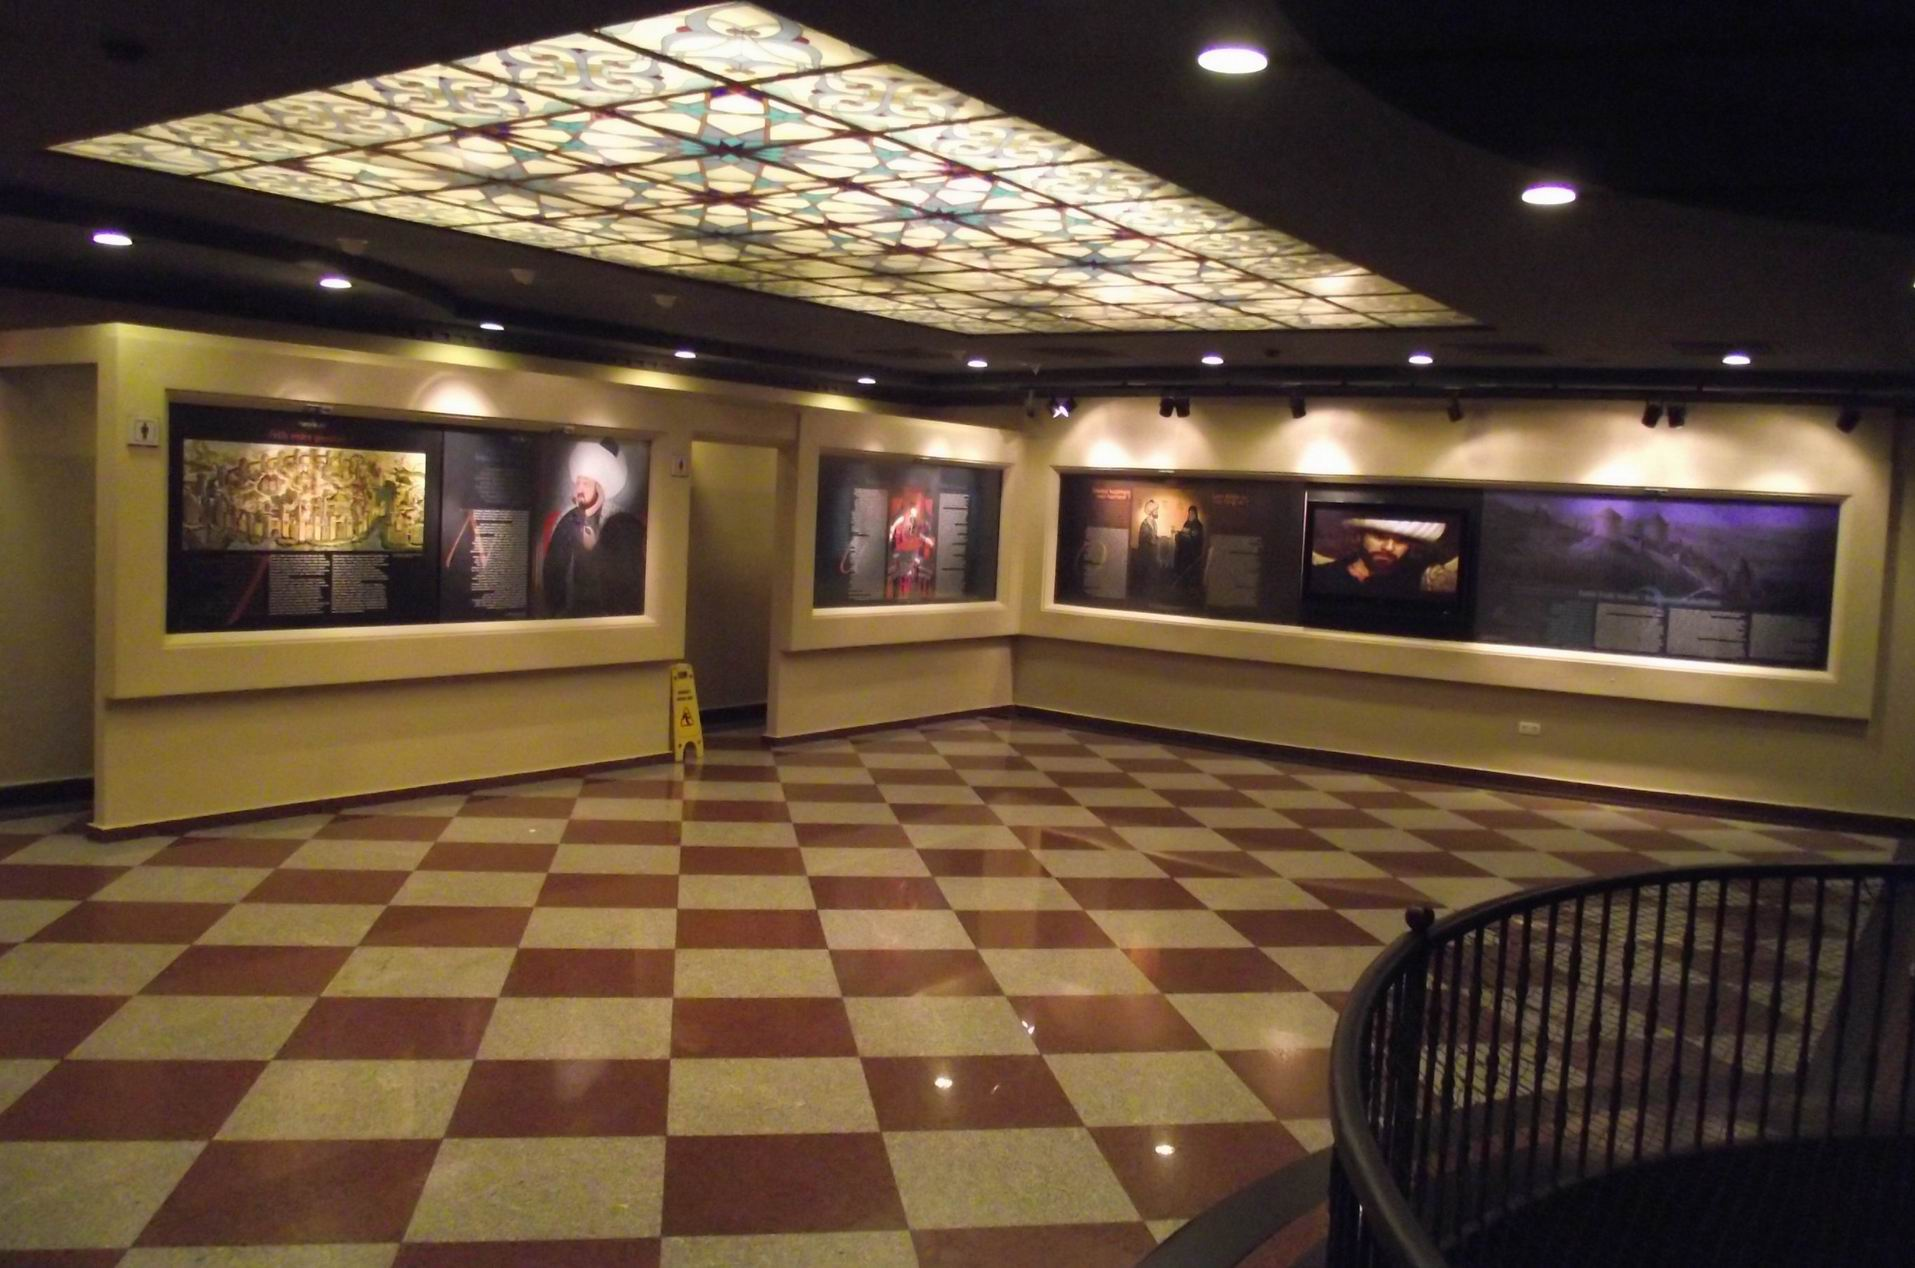 Panaromic Museum of Conquest of Istanbul (Panorama 1453) (Istanbul)